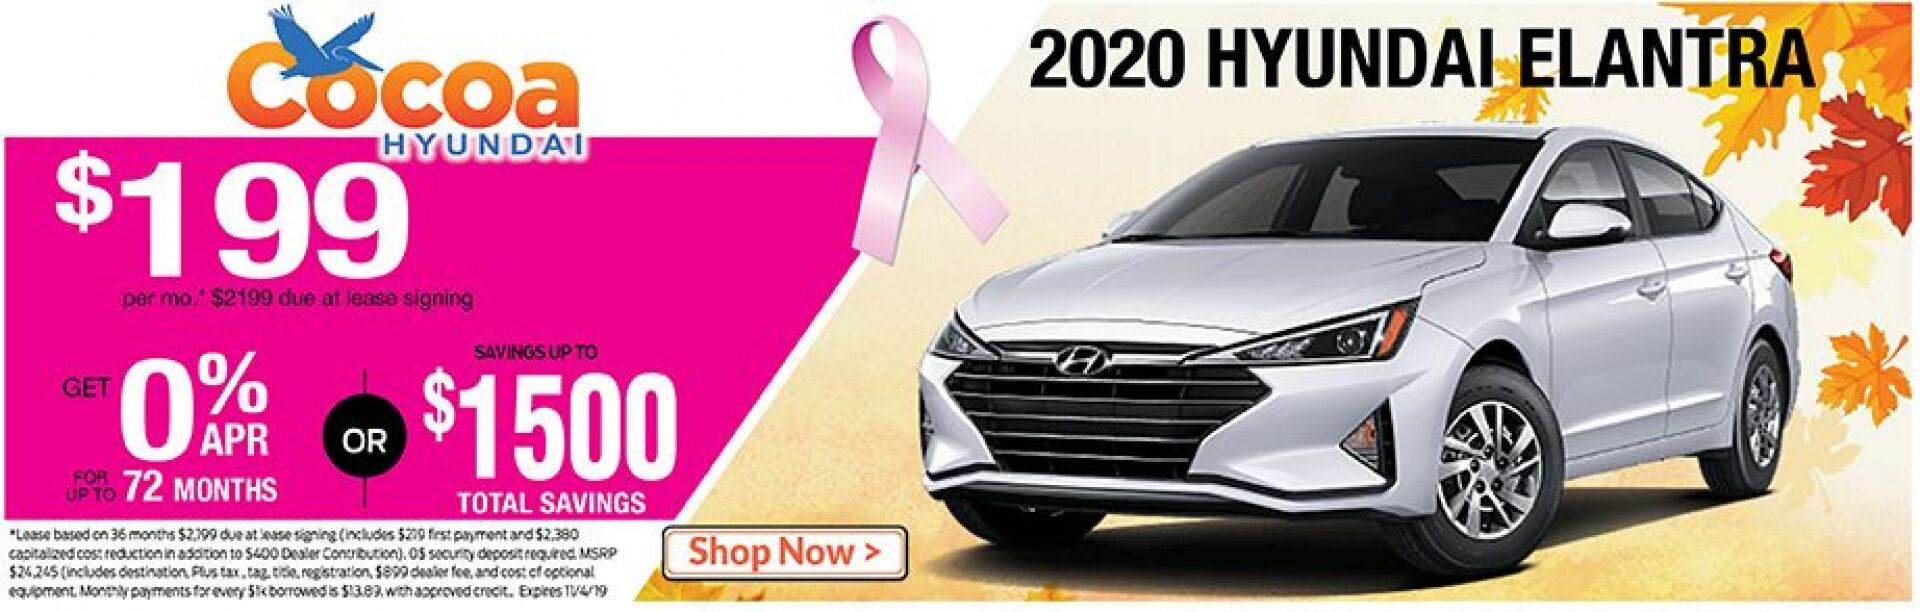 2020 Hyundai Elantra October